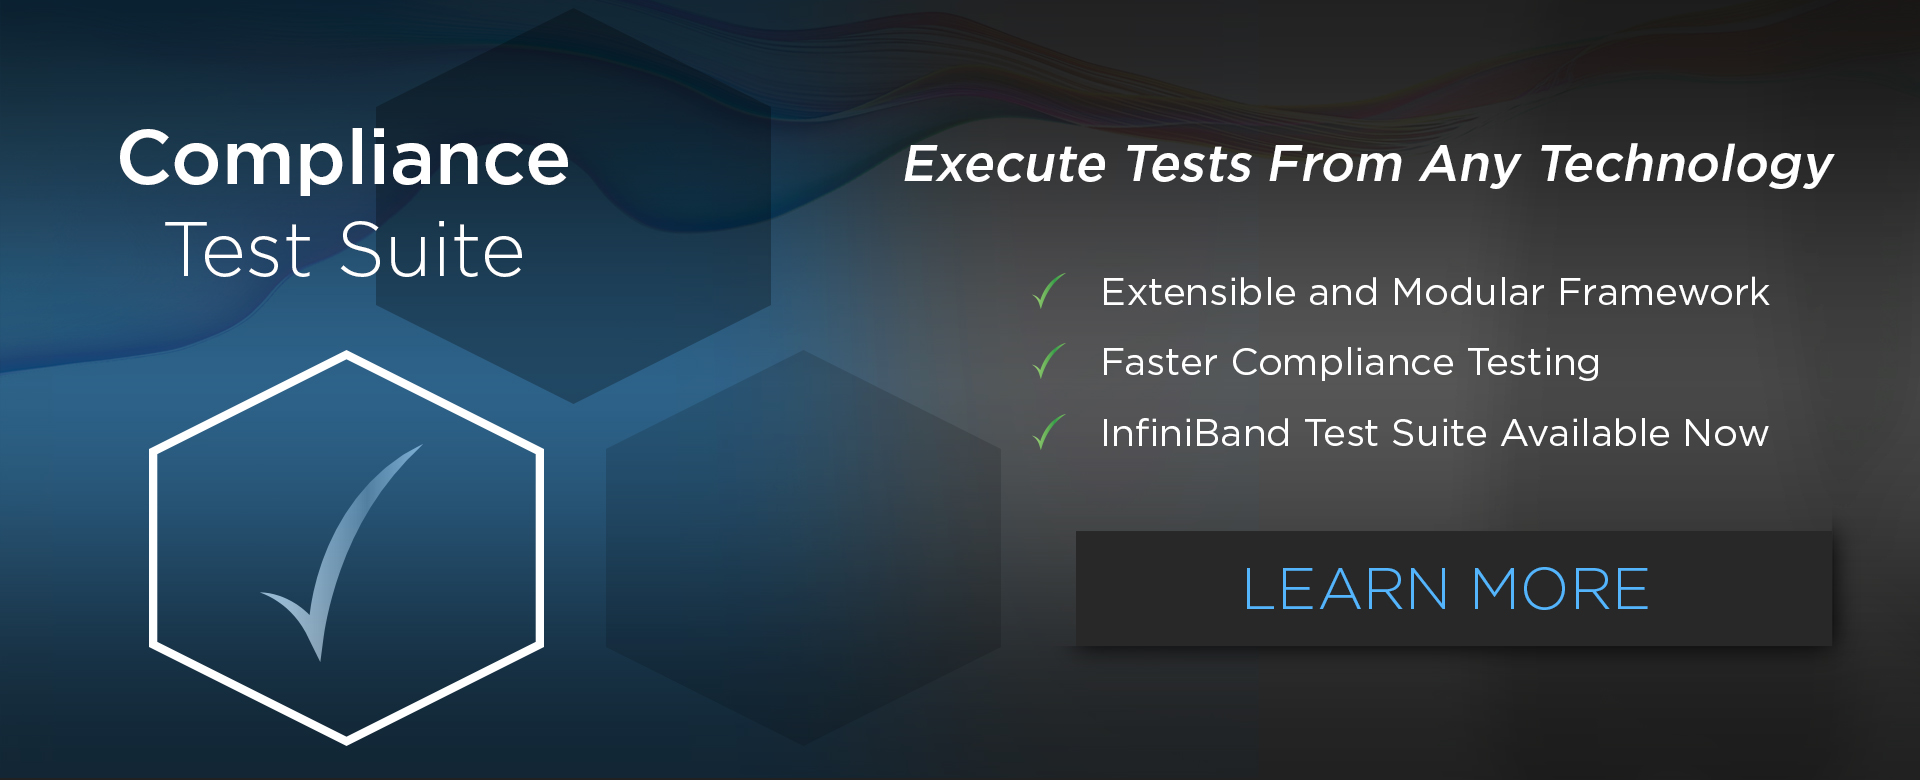 Compliance Test Suite for InfiniBand Testing